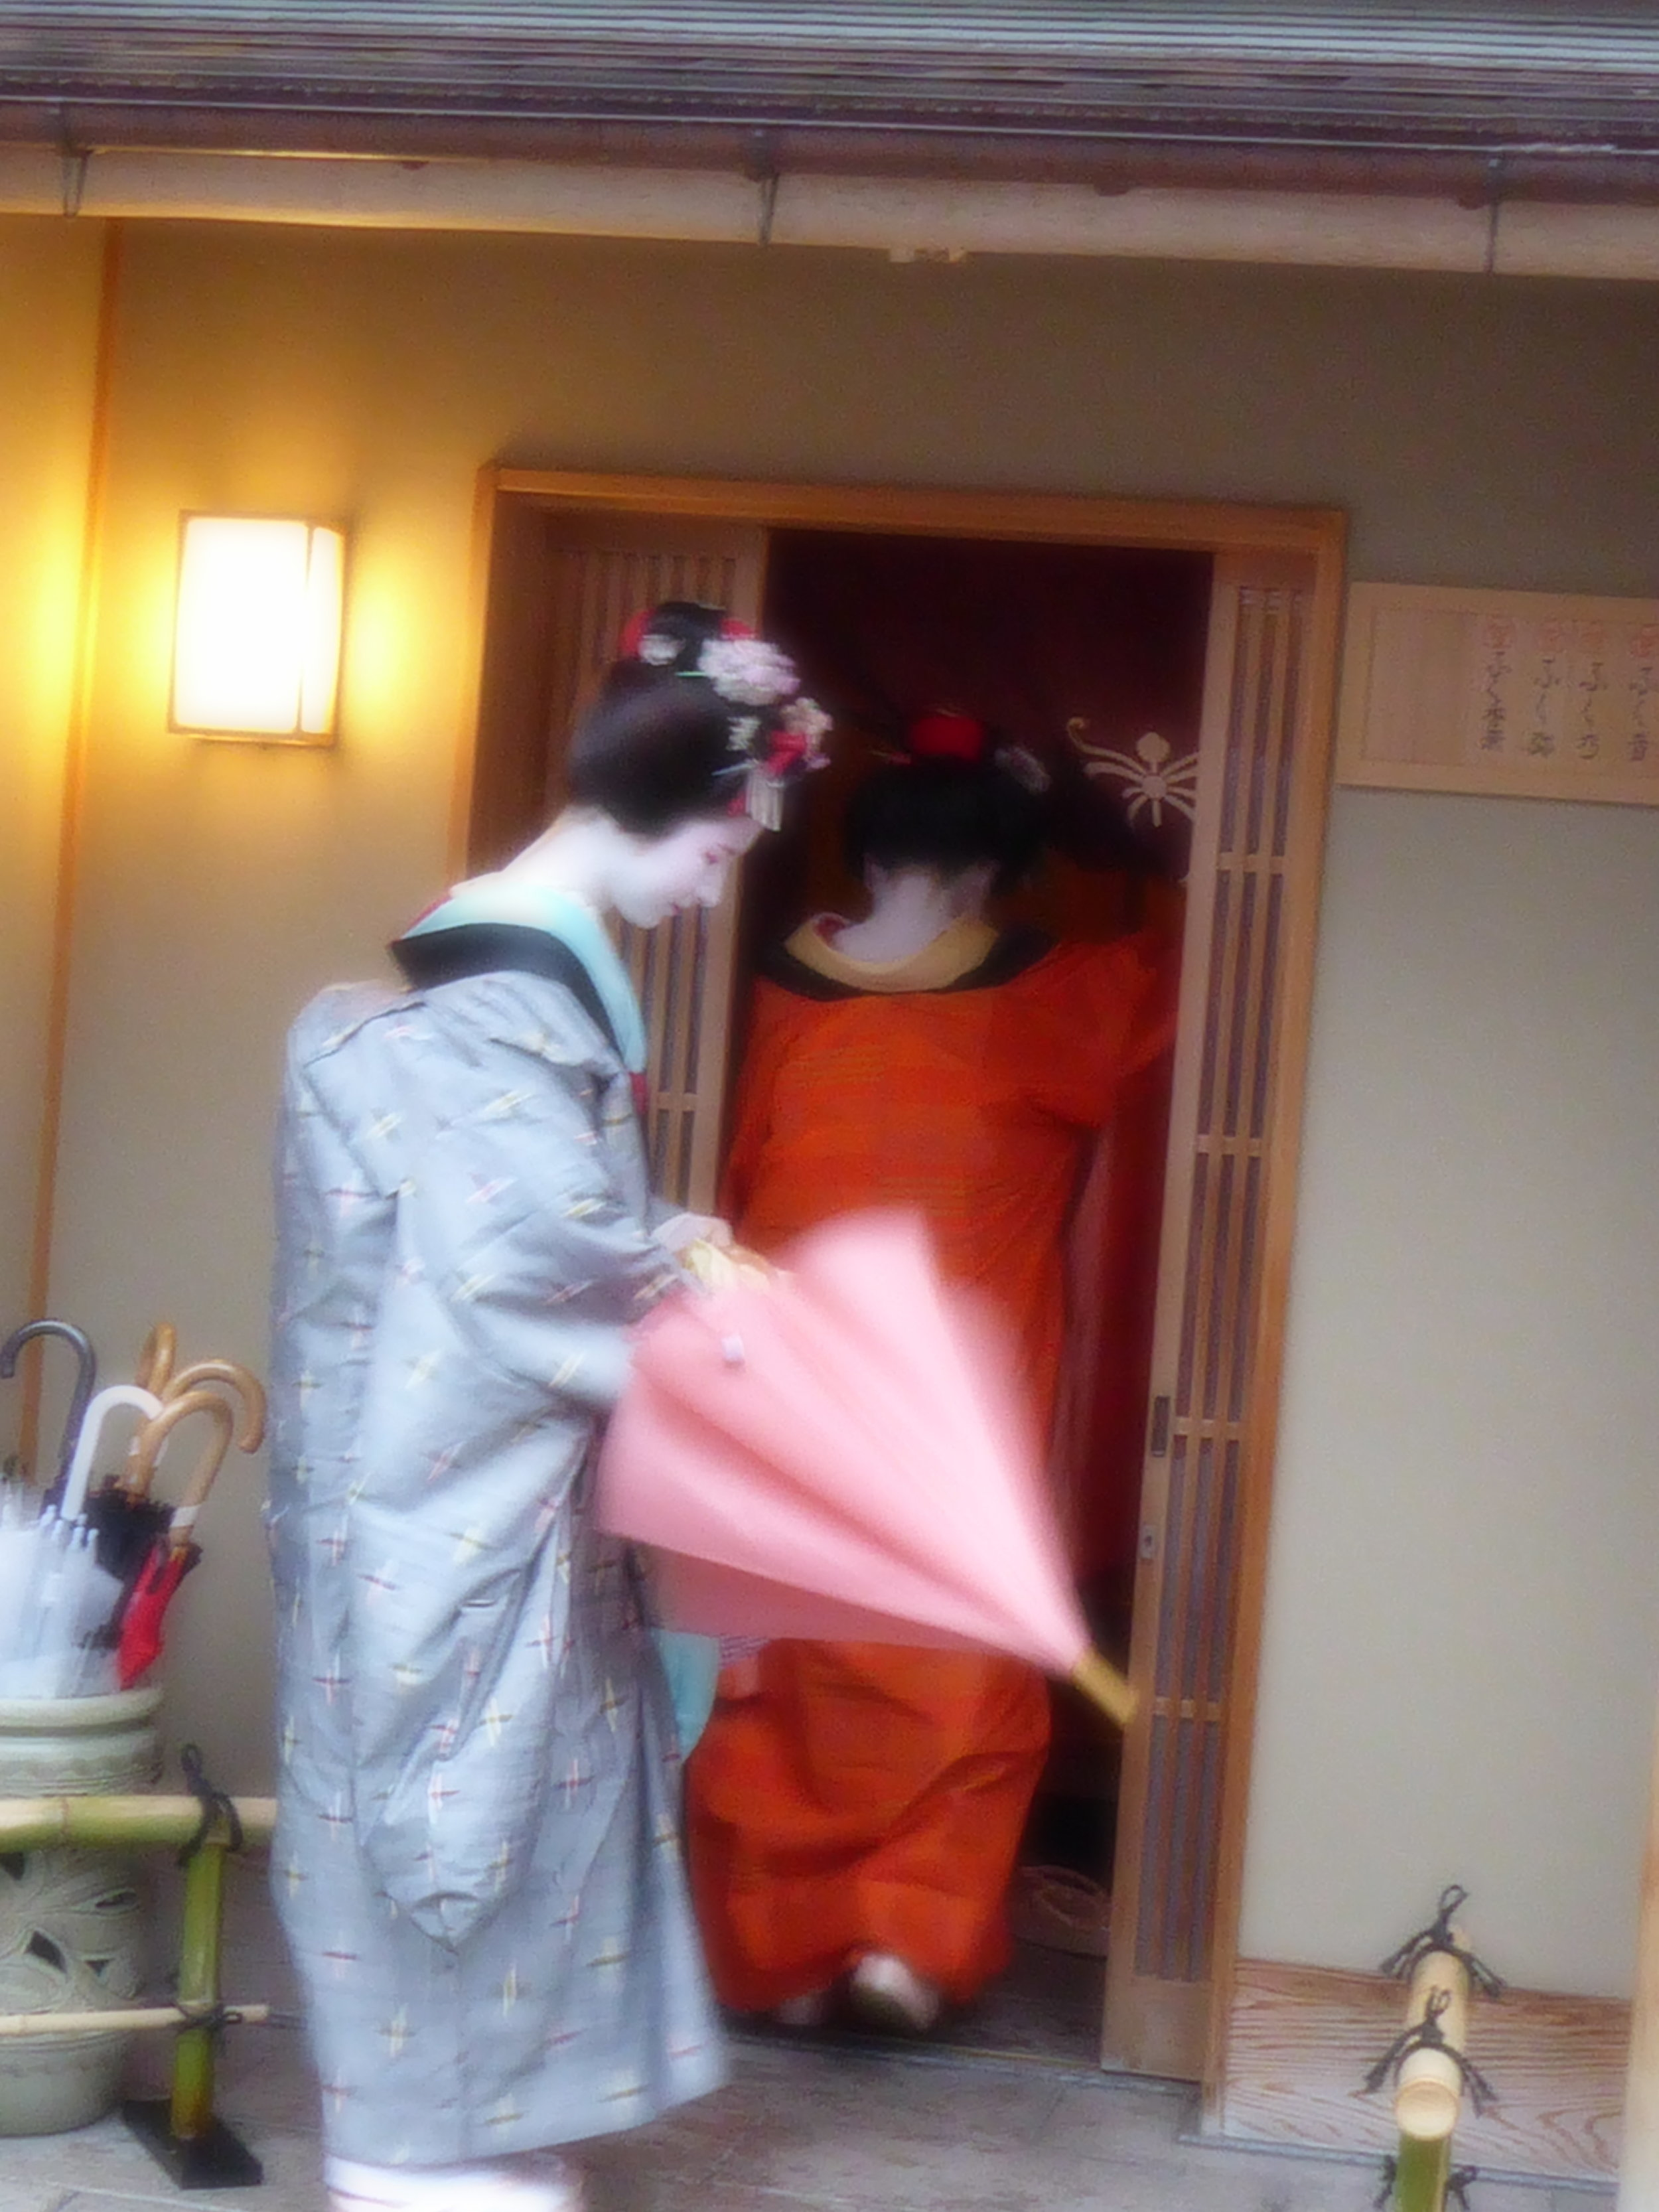 We wandered through a small, historic geisha neighborhood and, thanks to an historian acquaintance from Kyoto,learned about the life of a geisha. We also saw a geisha show put on by one of Japan's 'living national treasures.'